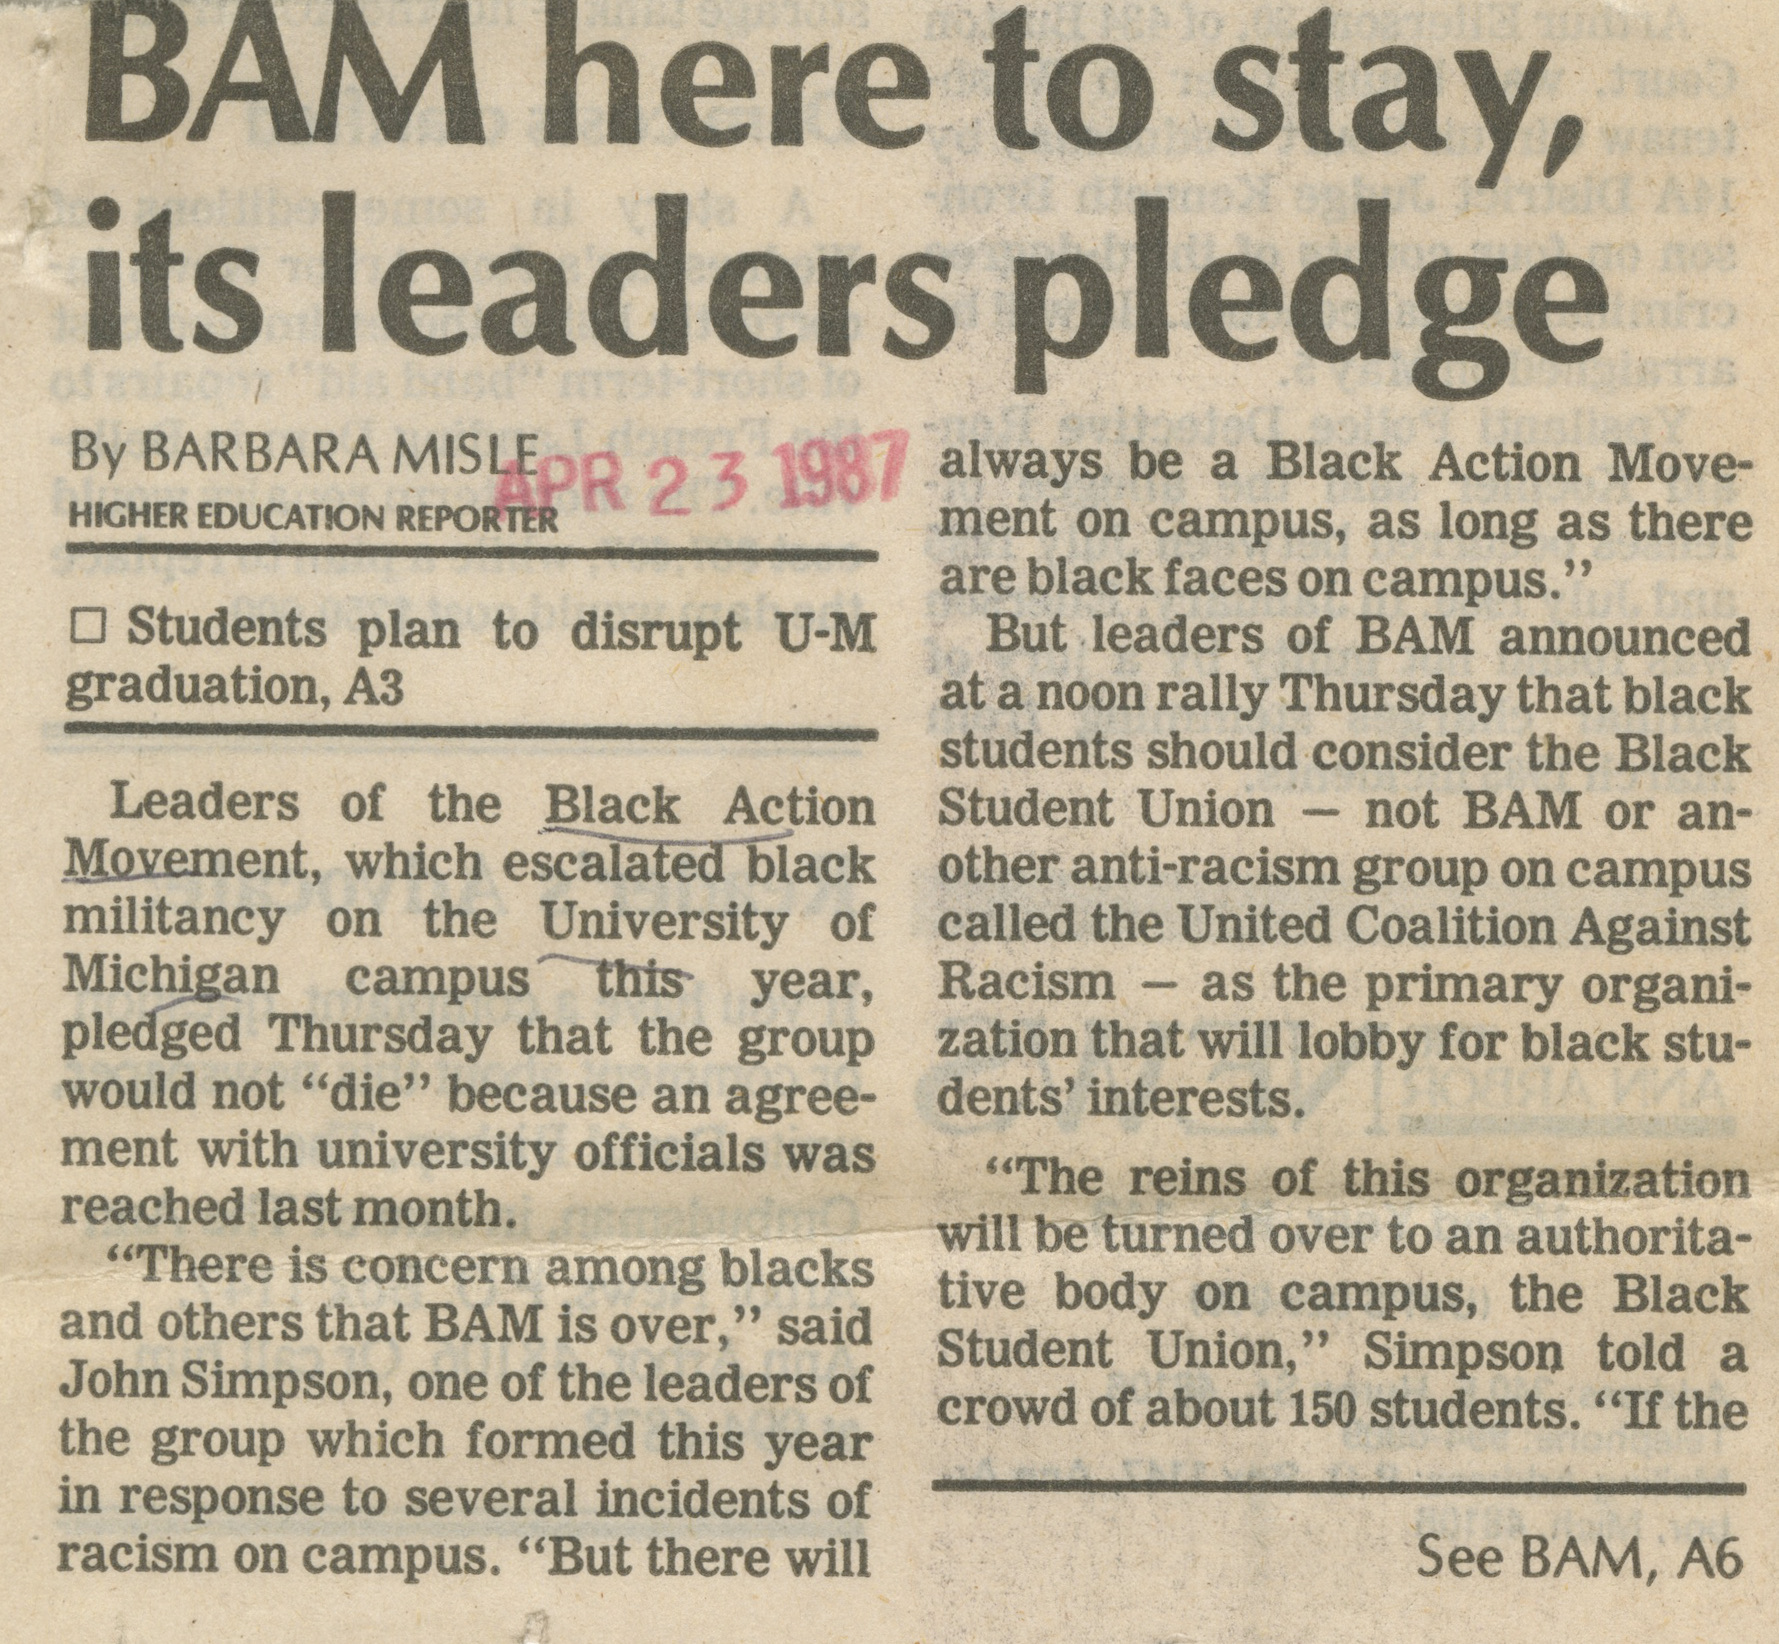 BAM Here To Stay, Its Leaders Pledge image